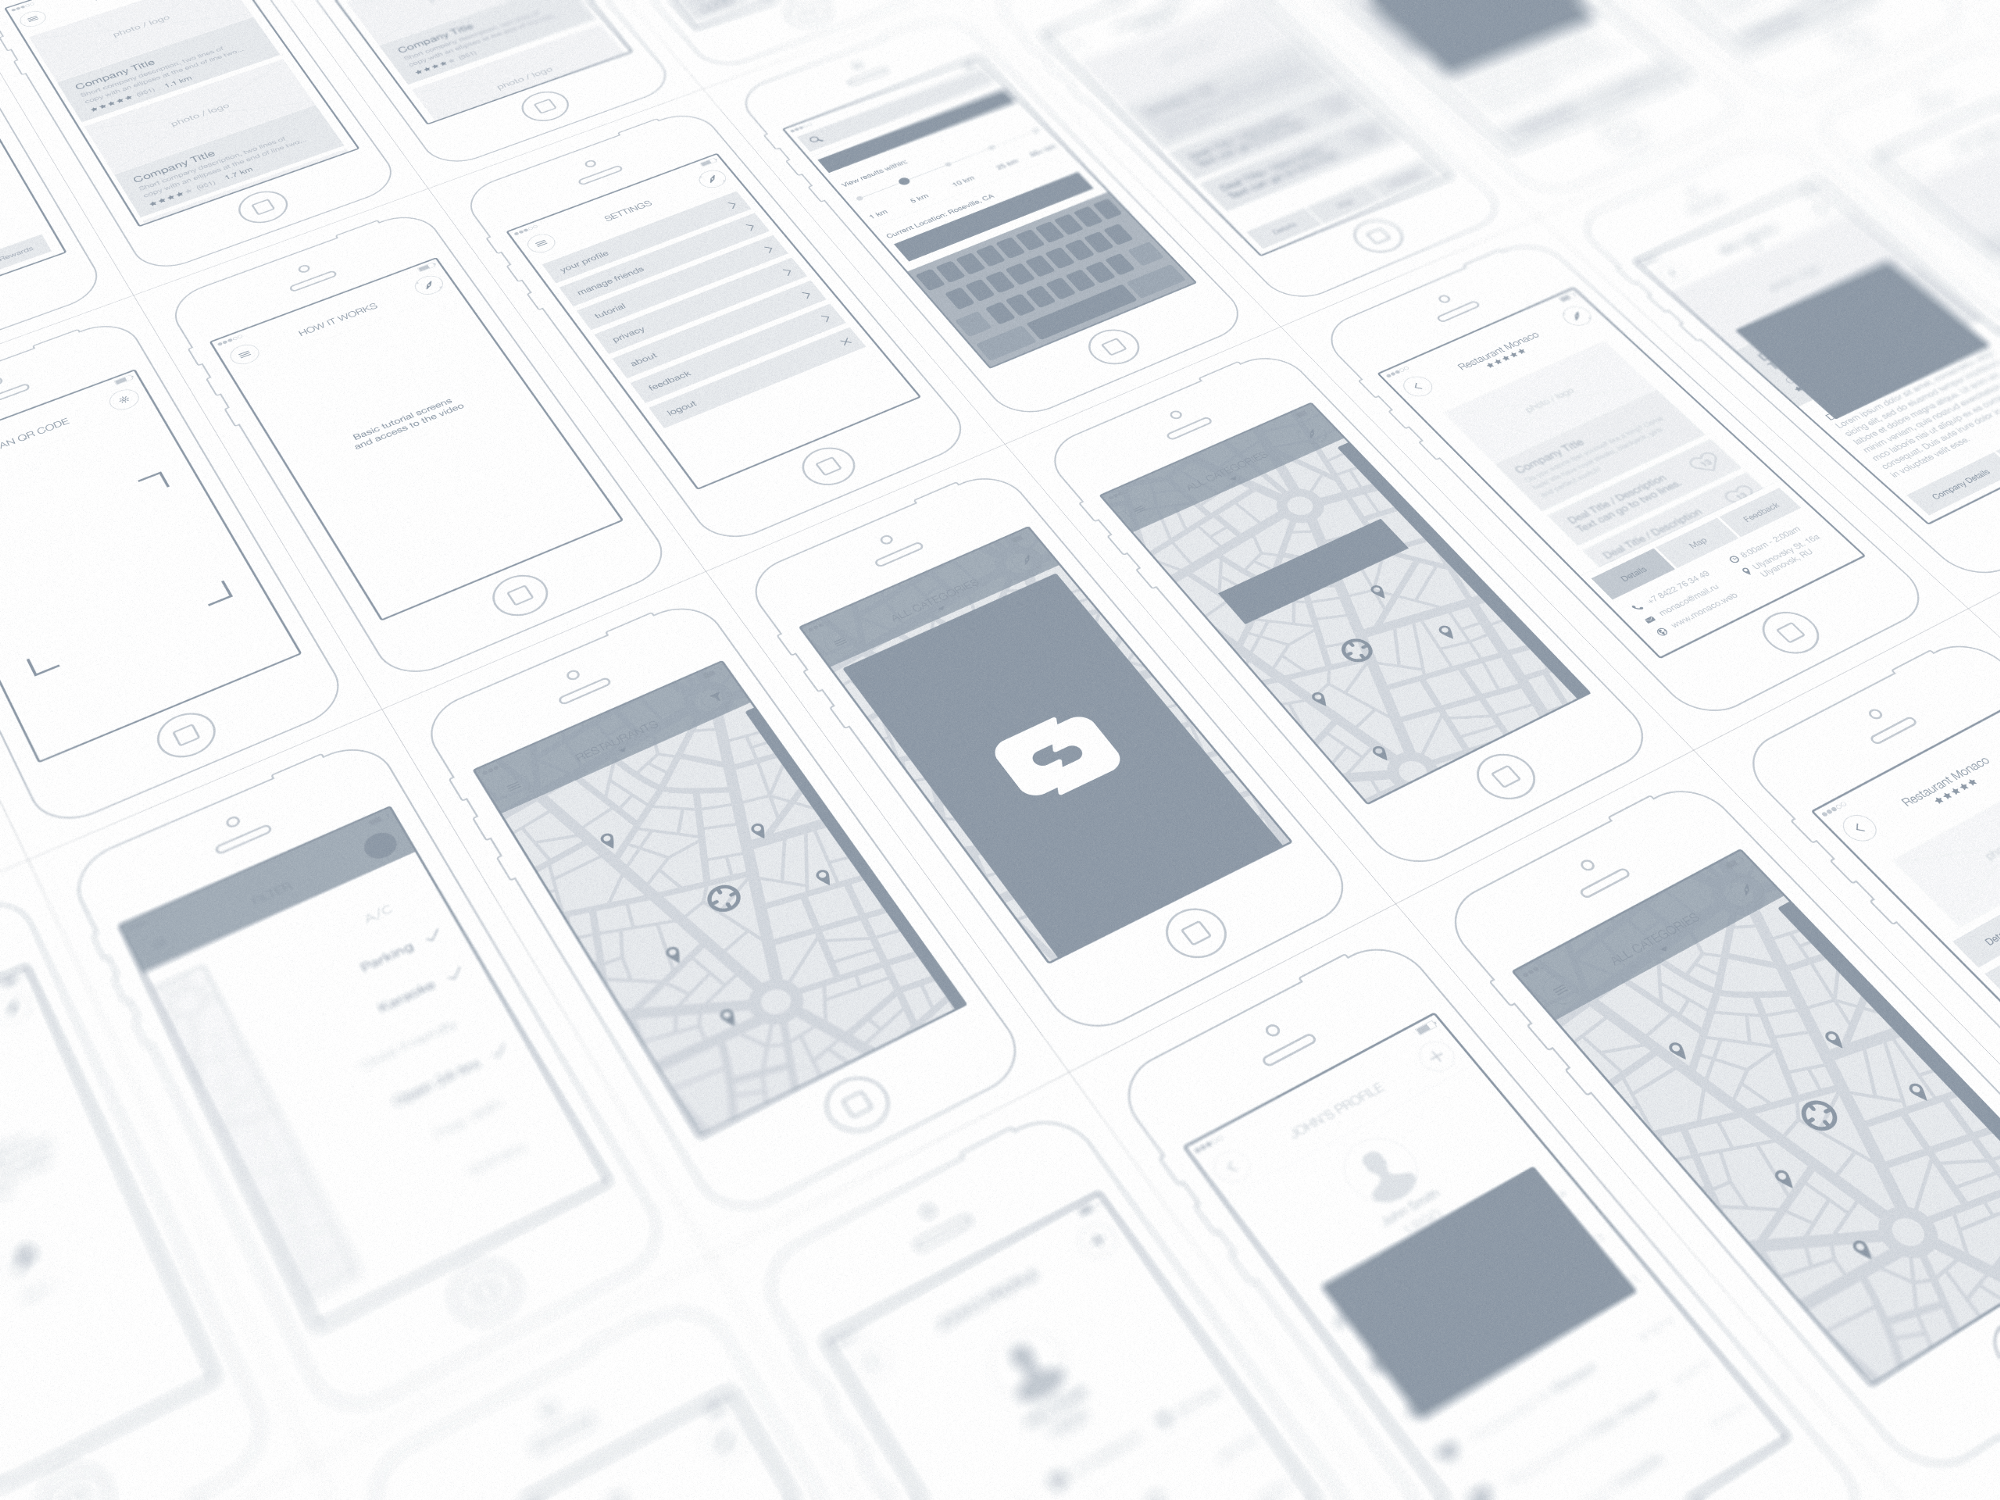 What is the importance of Wireframing in the UX Process?